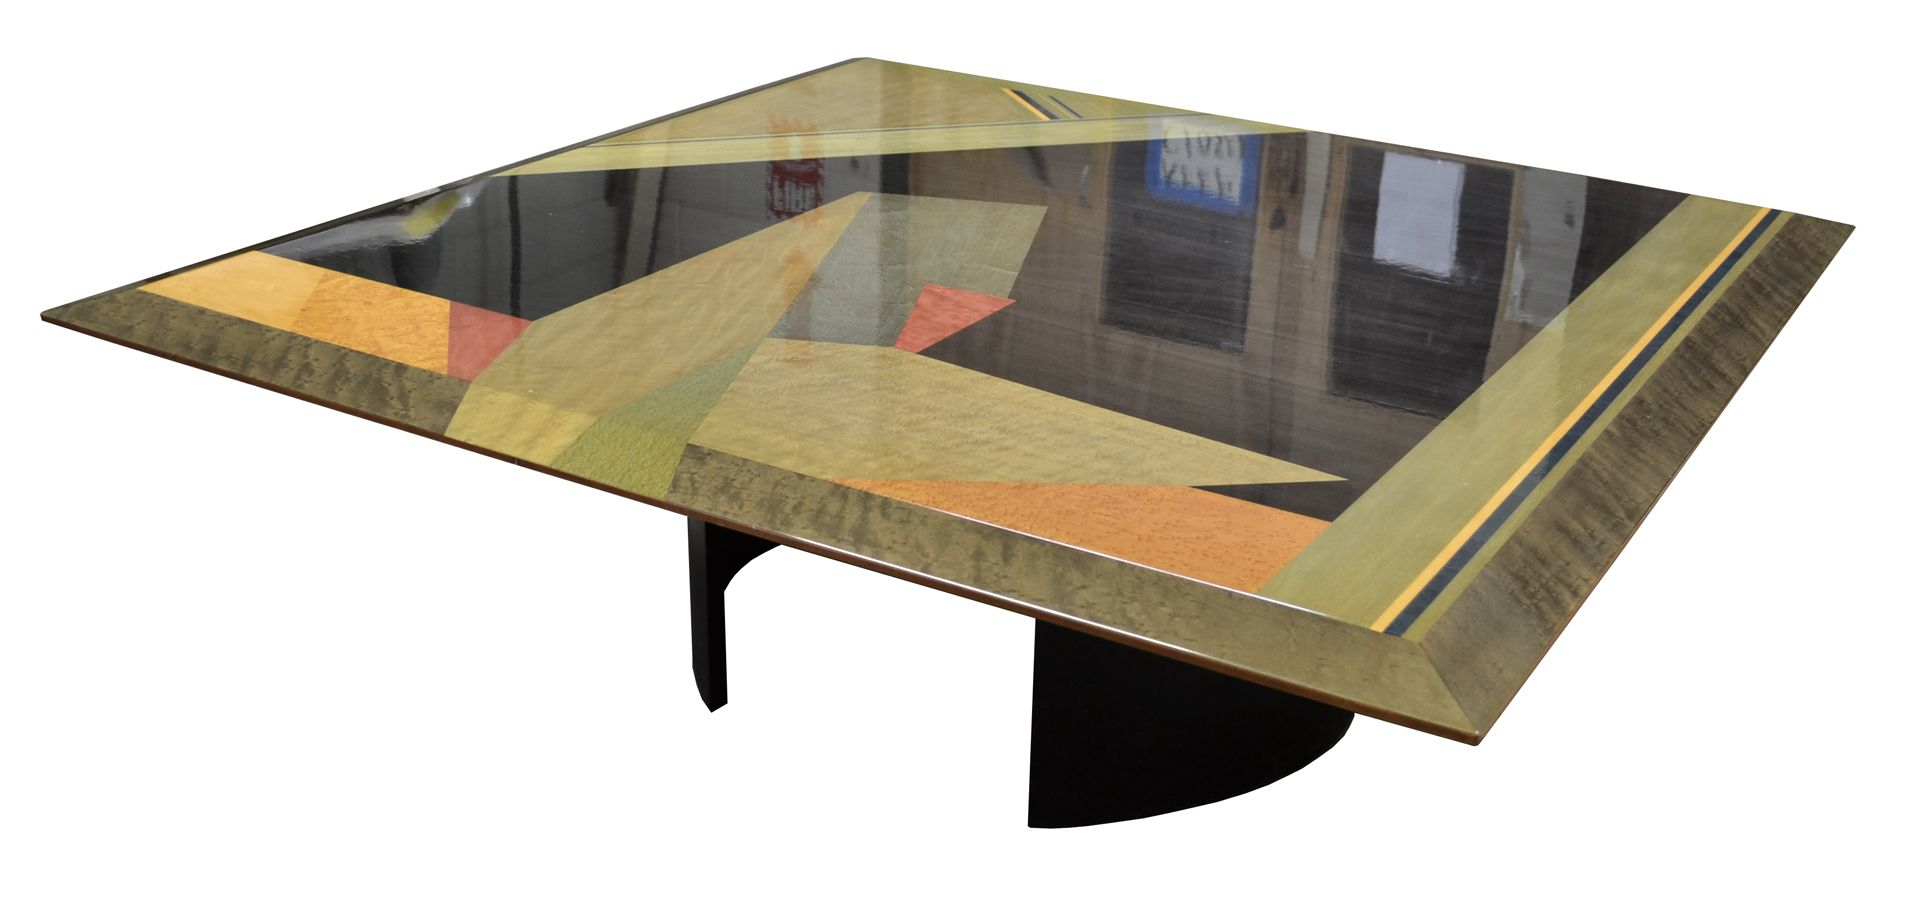 Buy square multi colored coffee table by mike bell inc westwater patterson limited edition designer furniture from dering halls collection of